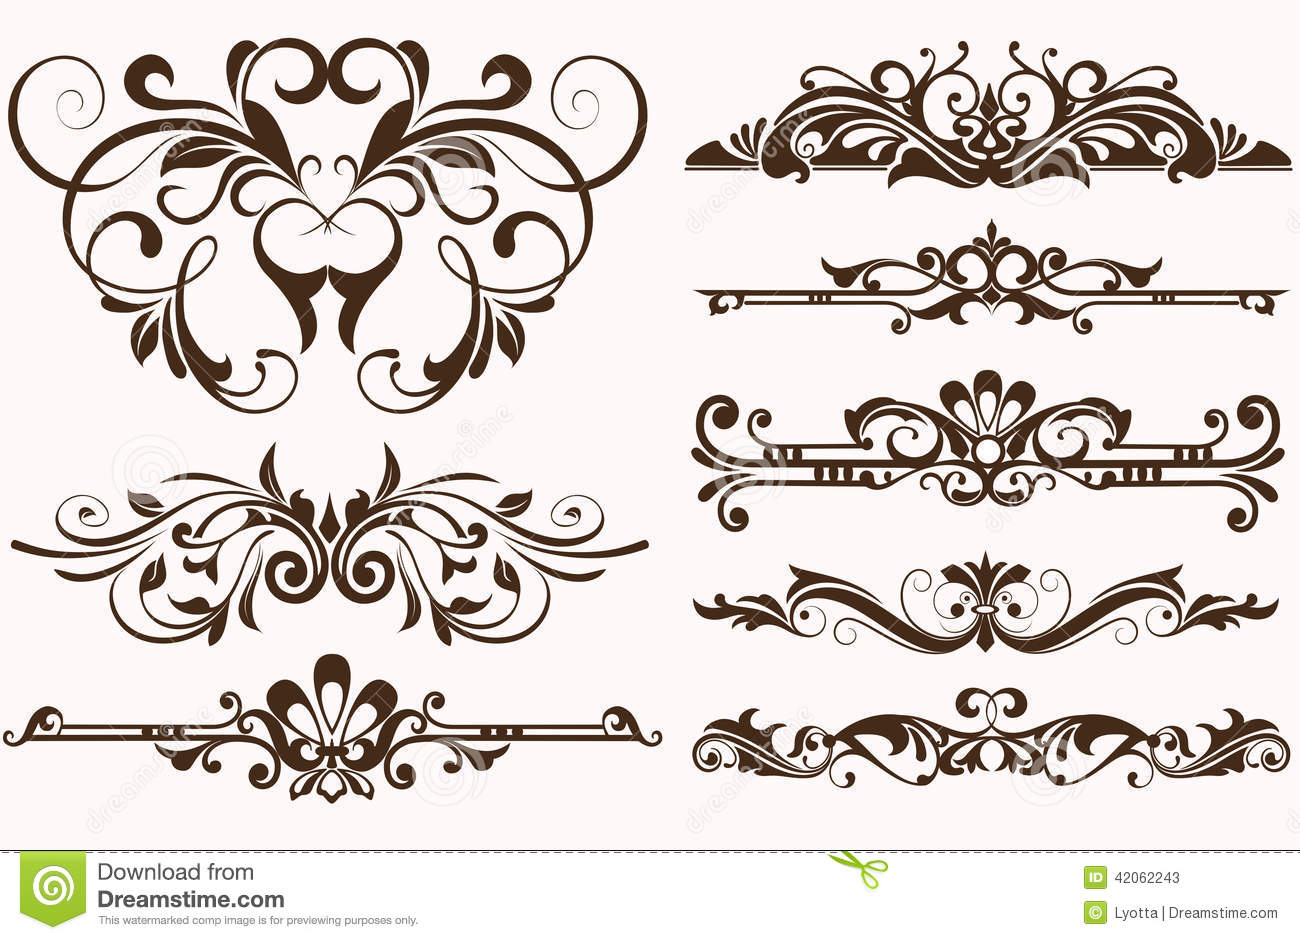 Veils with floral patterns on them inspired by art nouveau